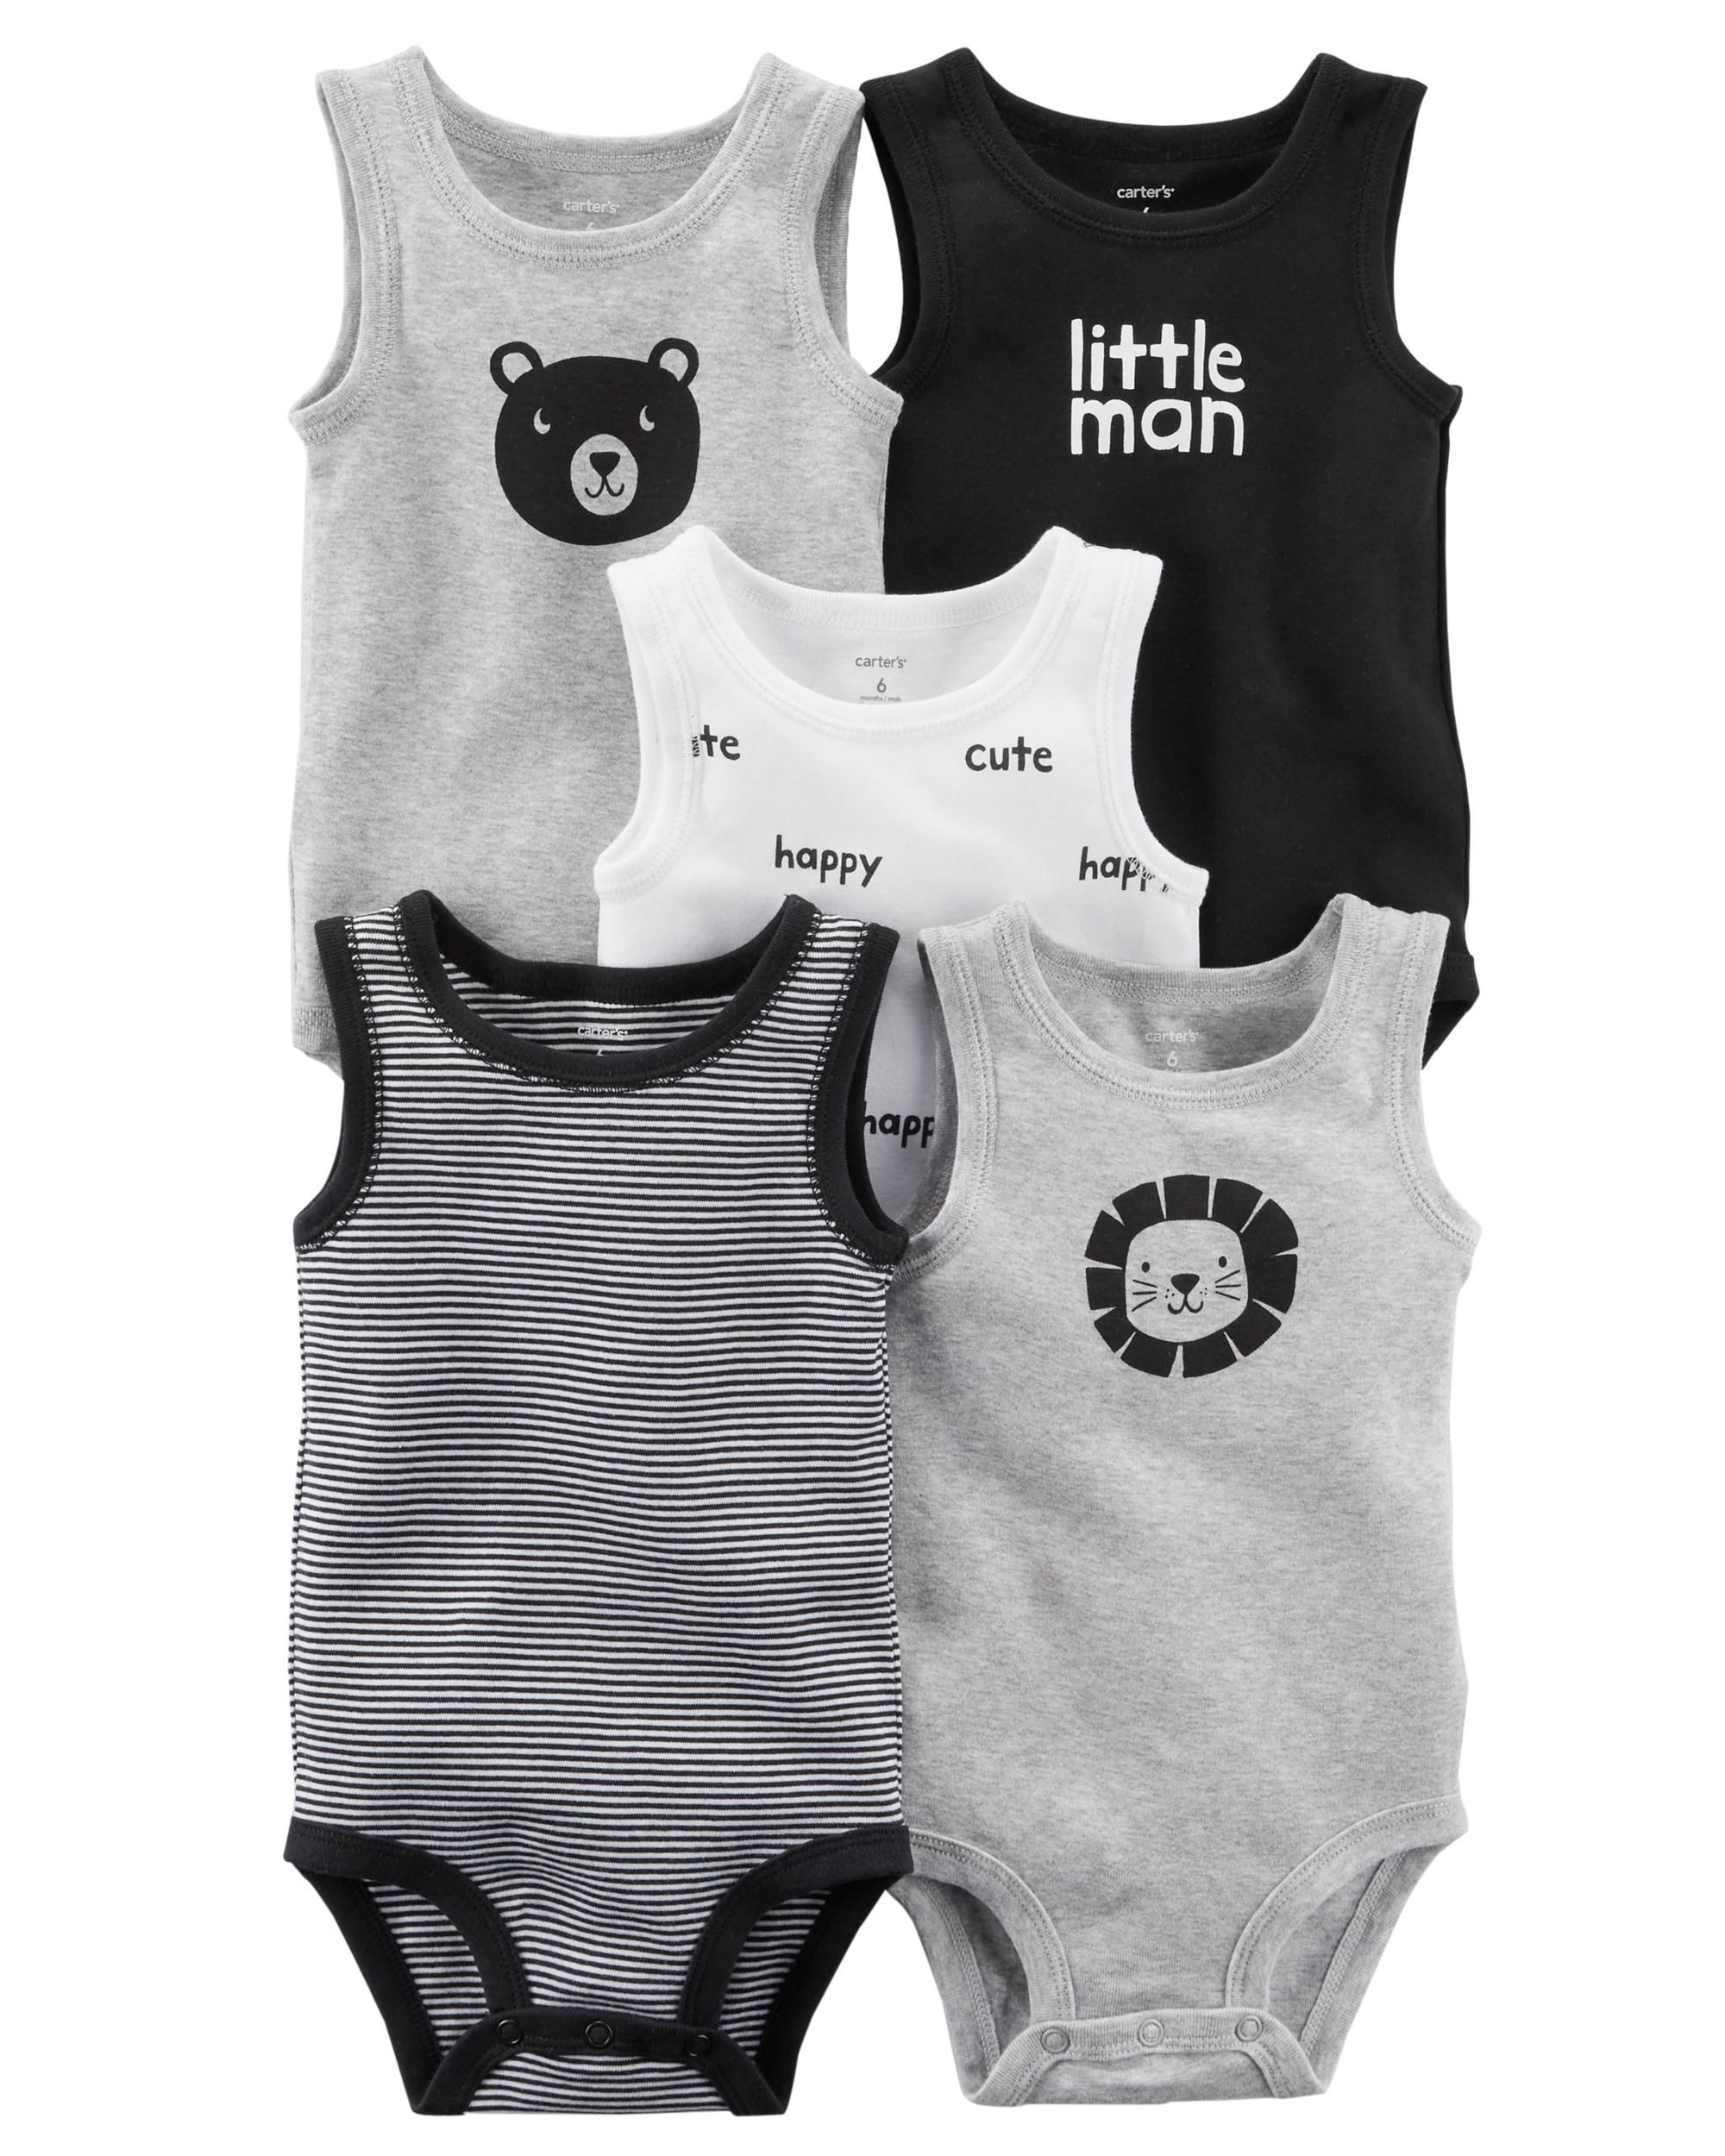 c1a6522d1 Carter's 5-Pack Tank Top Original Bodysuits- Little Man- Newborn ...